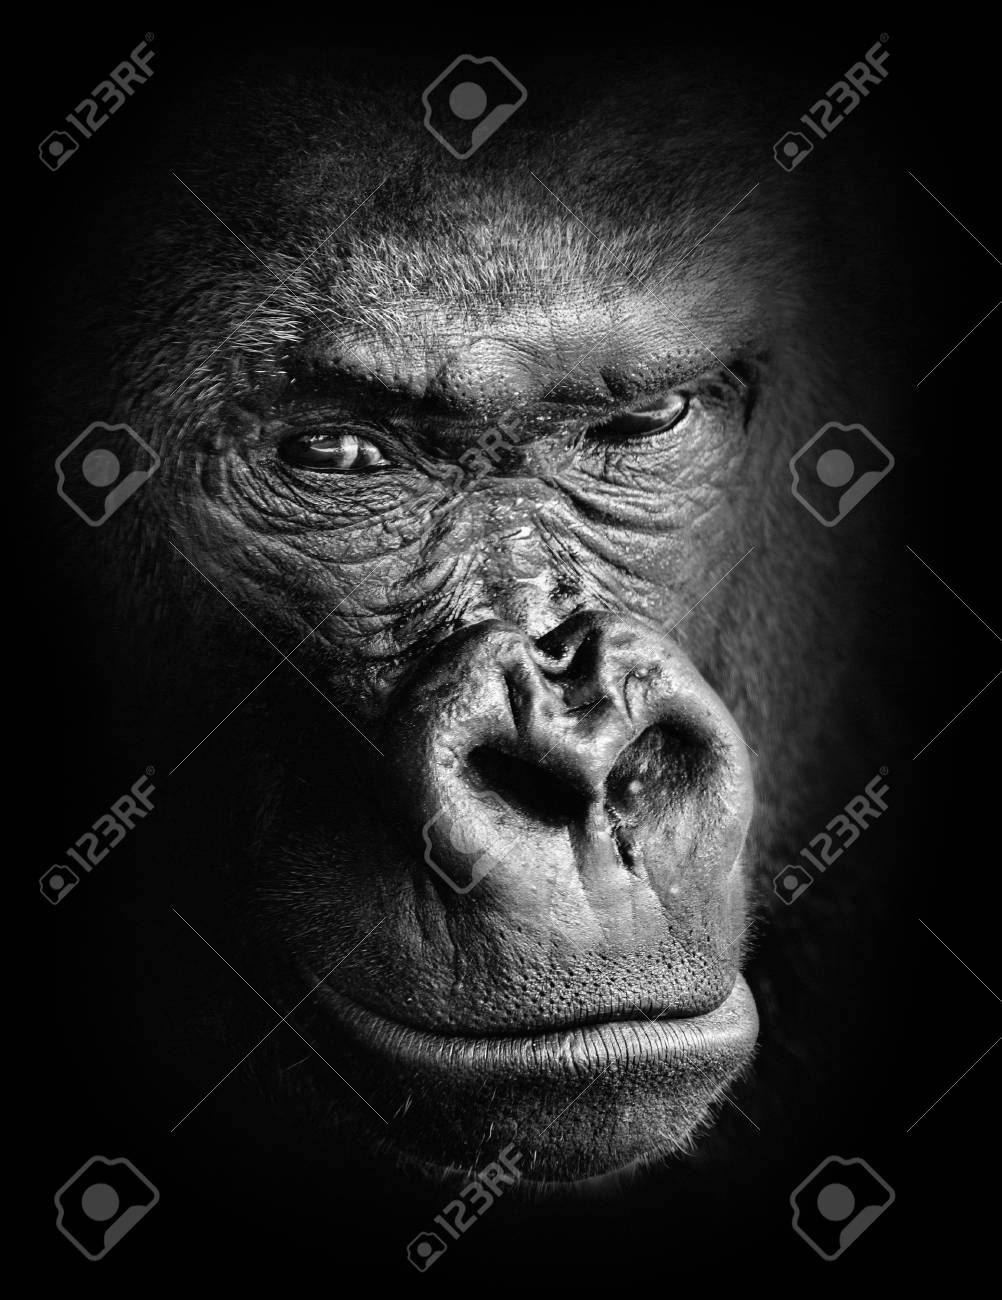 Black and white high contrast animal portrait of a pensive gorilla face isolated in shadows stock